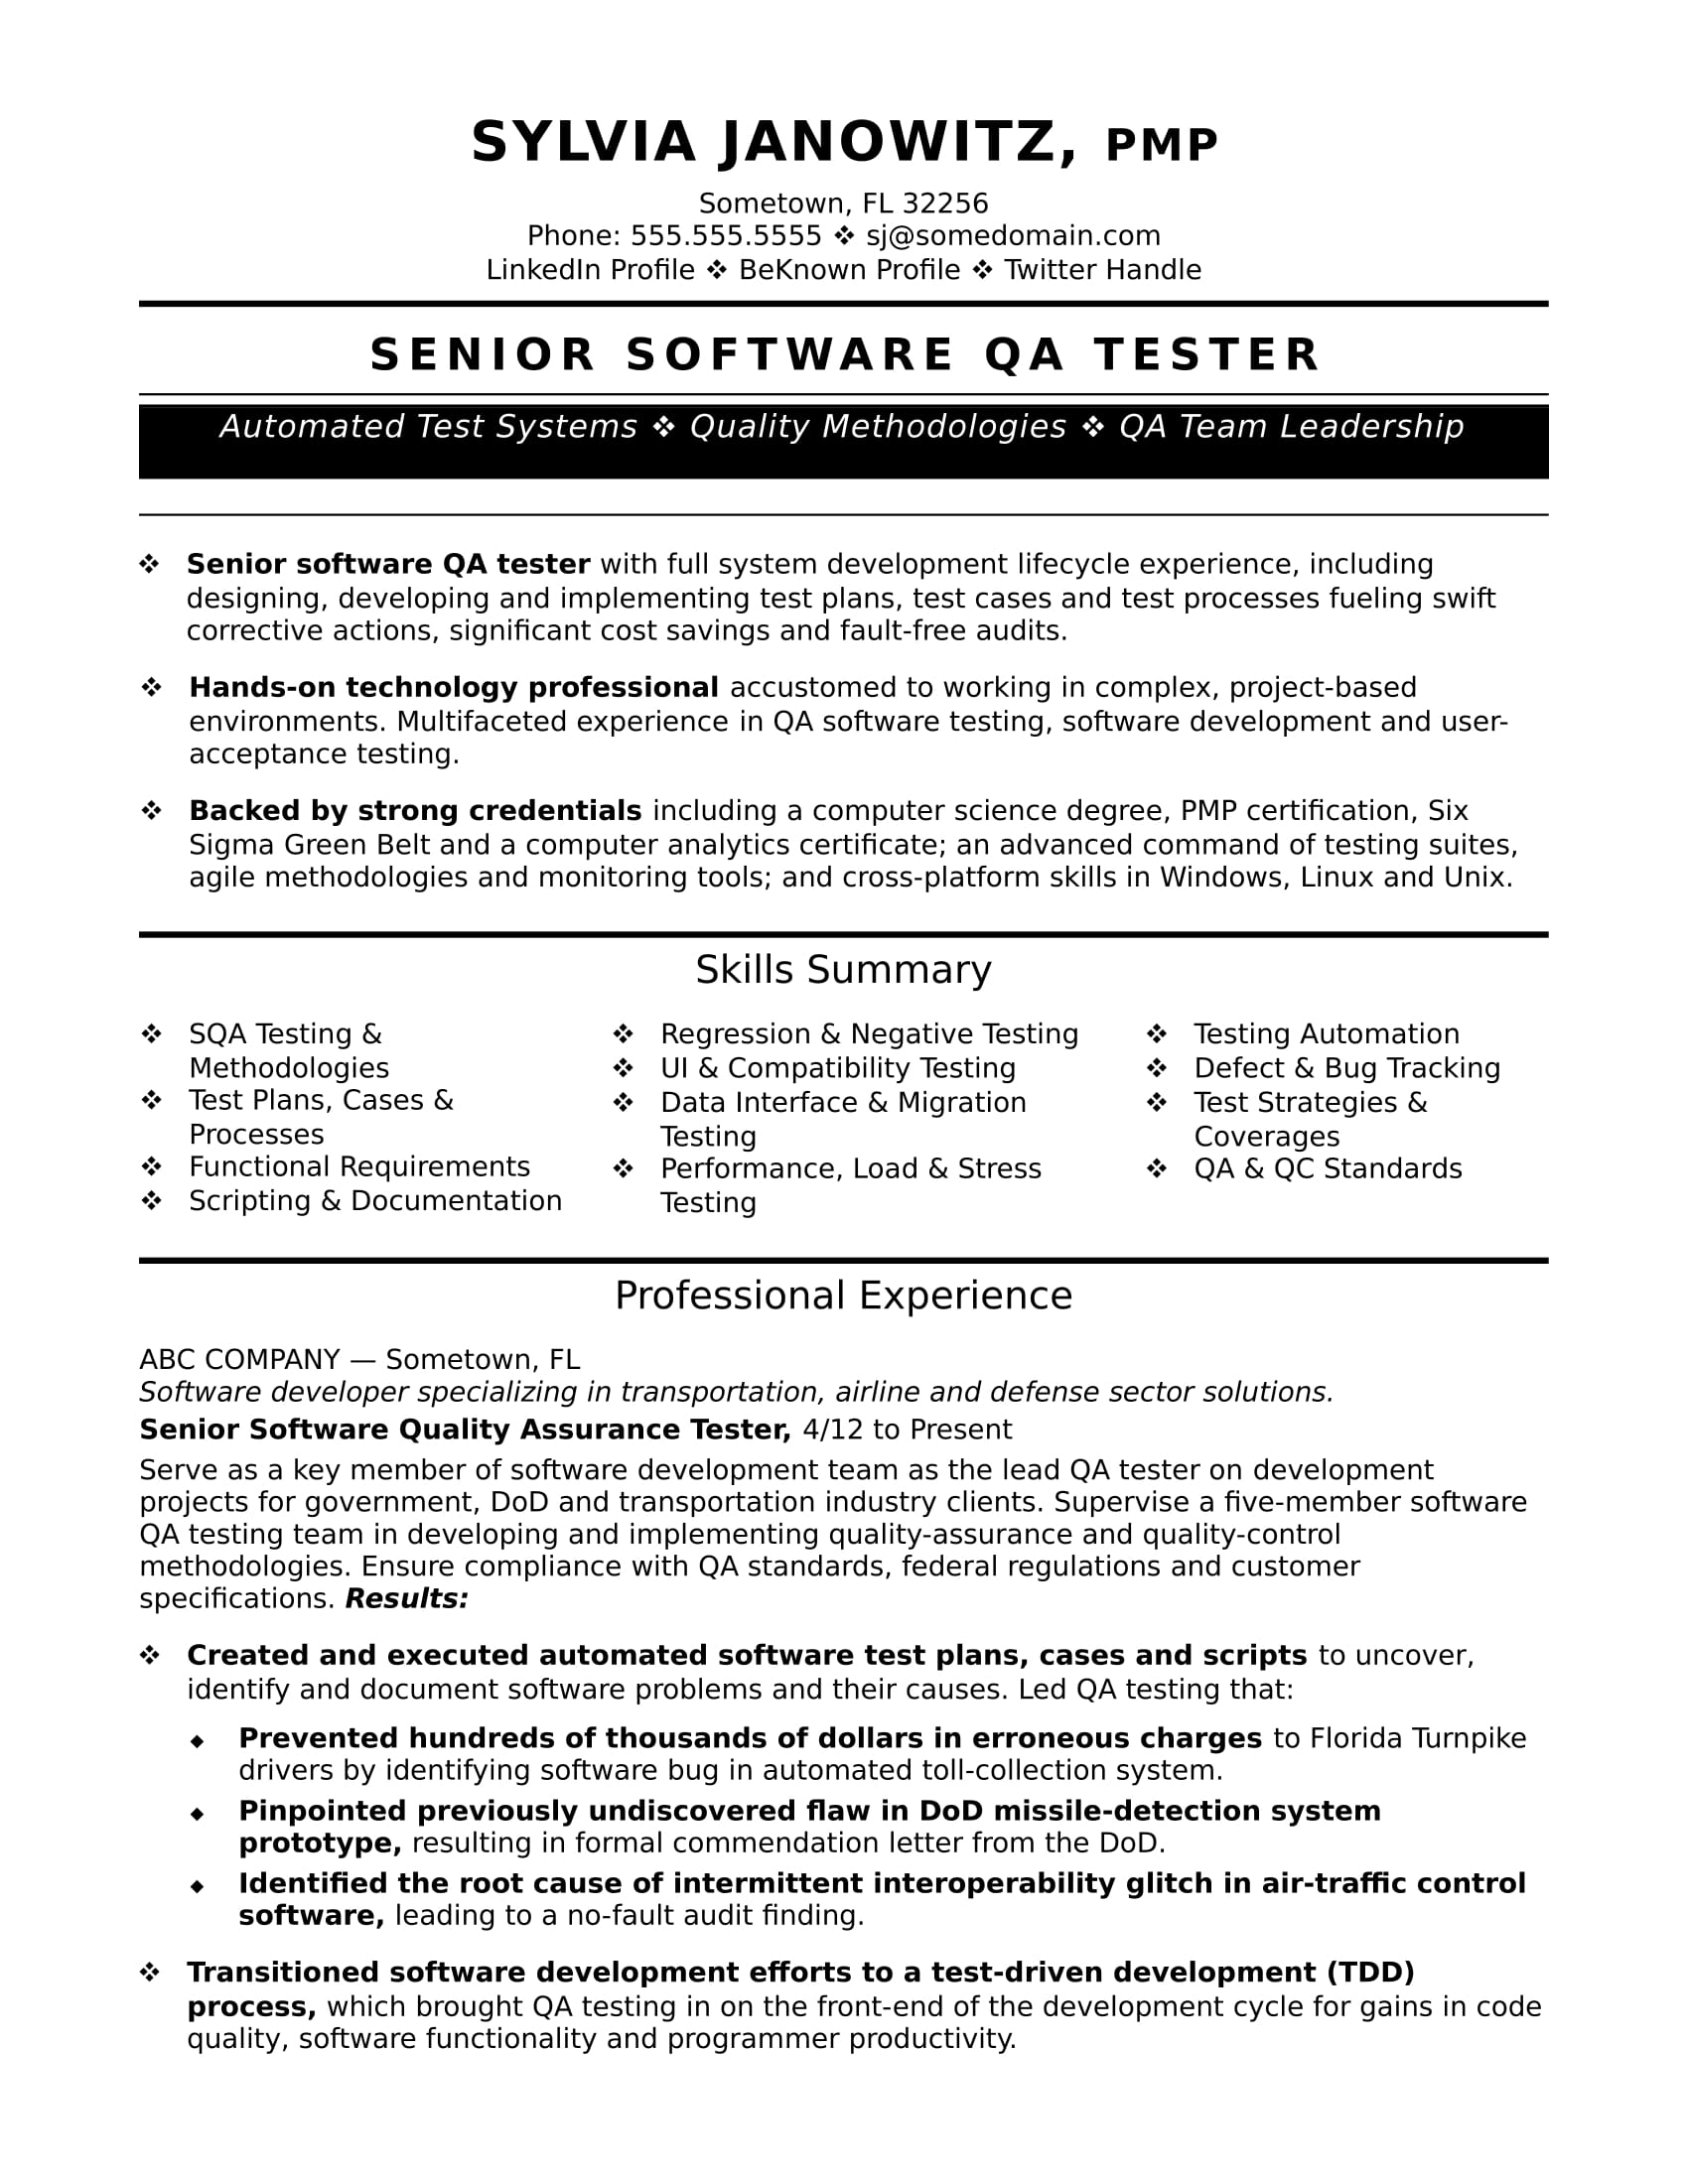 Experienced Qa Software Tester Resume Sample Monster Com